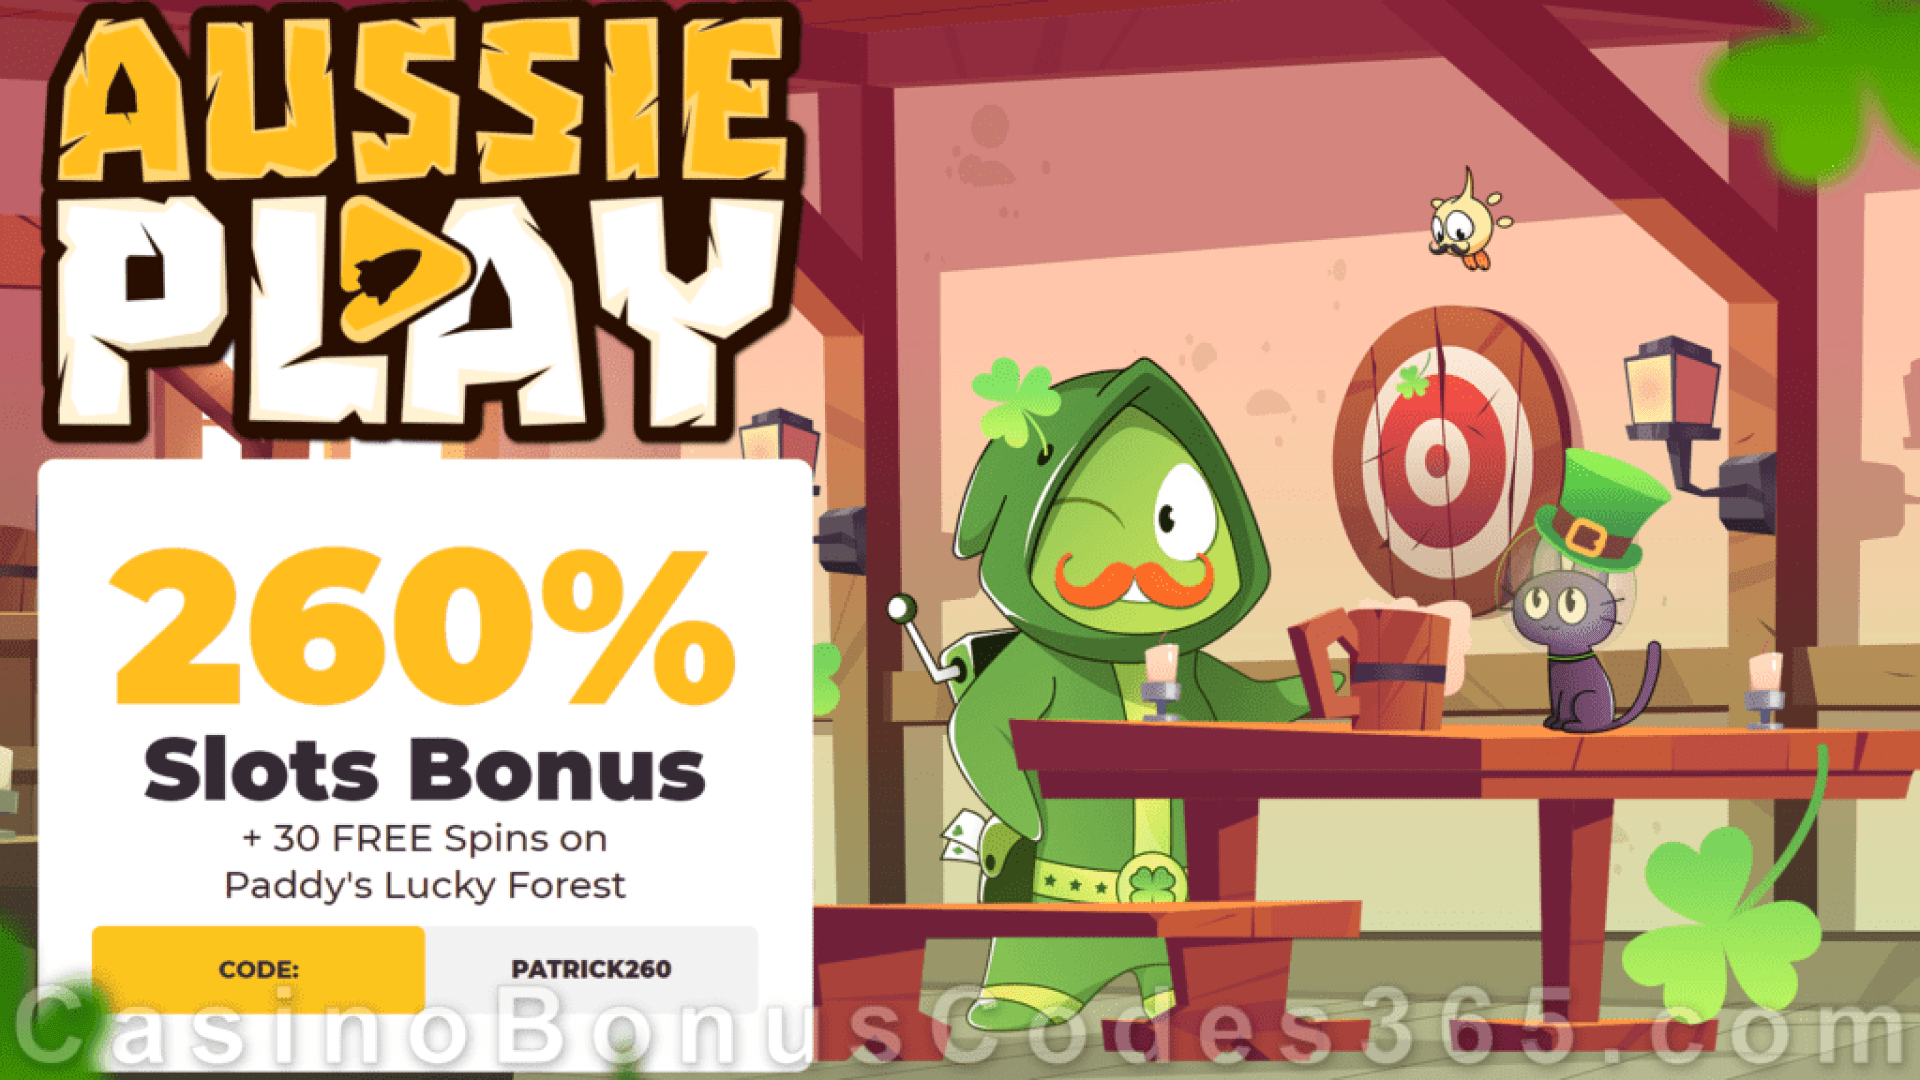 AussiePlay Casino 260% Match Pokies Bonus plus 30 FREE Paddy's Lucky Forest Spins New RTG Game Welcome Offer